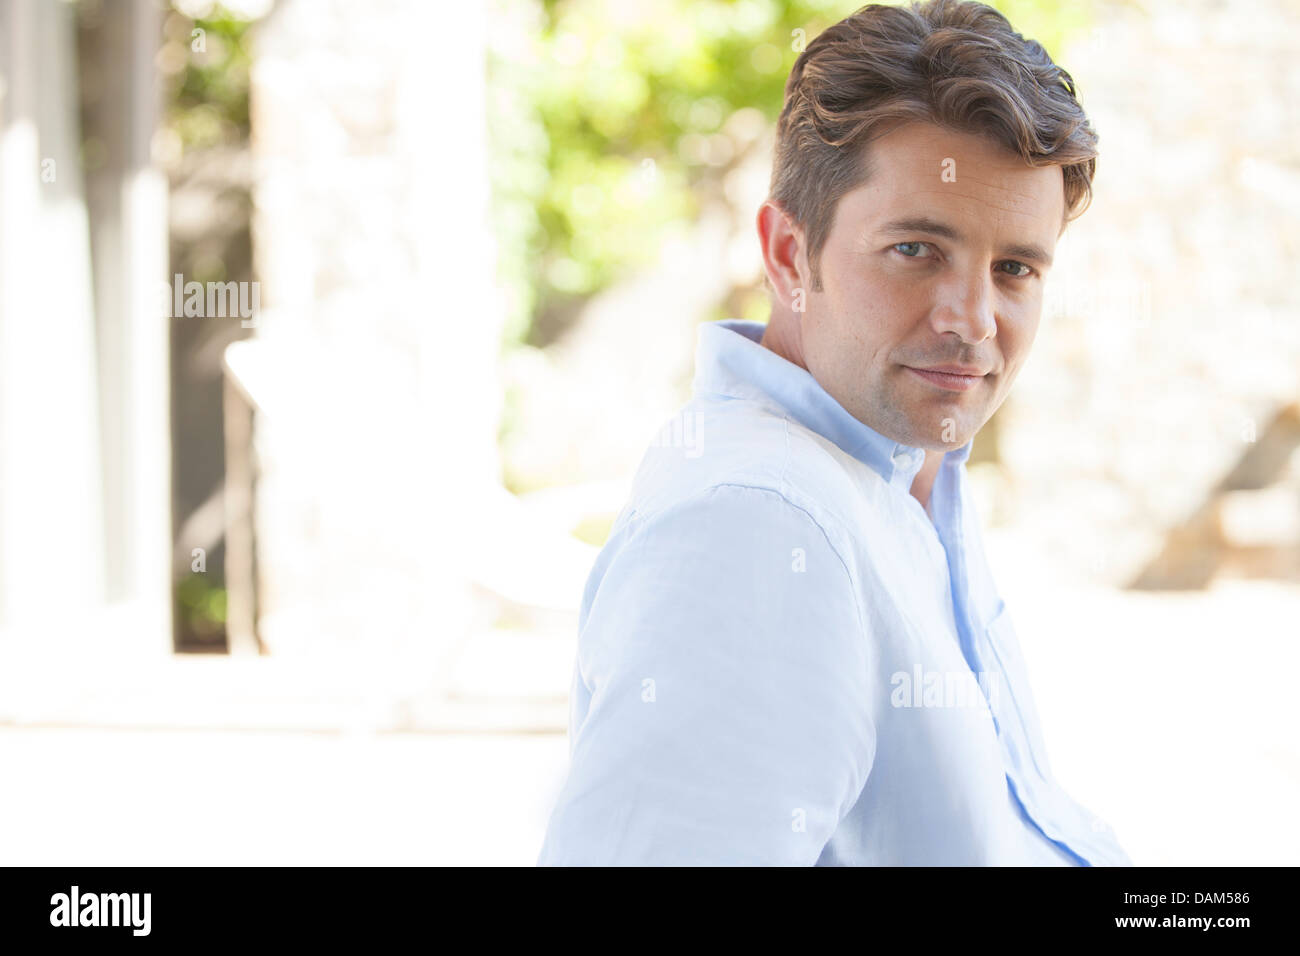 Man smiling outdoors - Stock Image